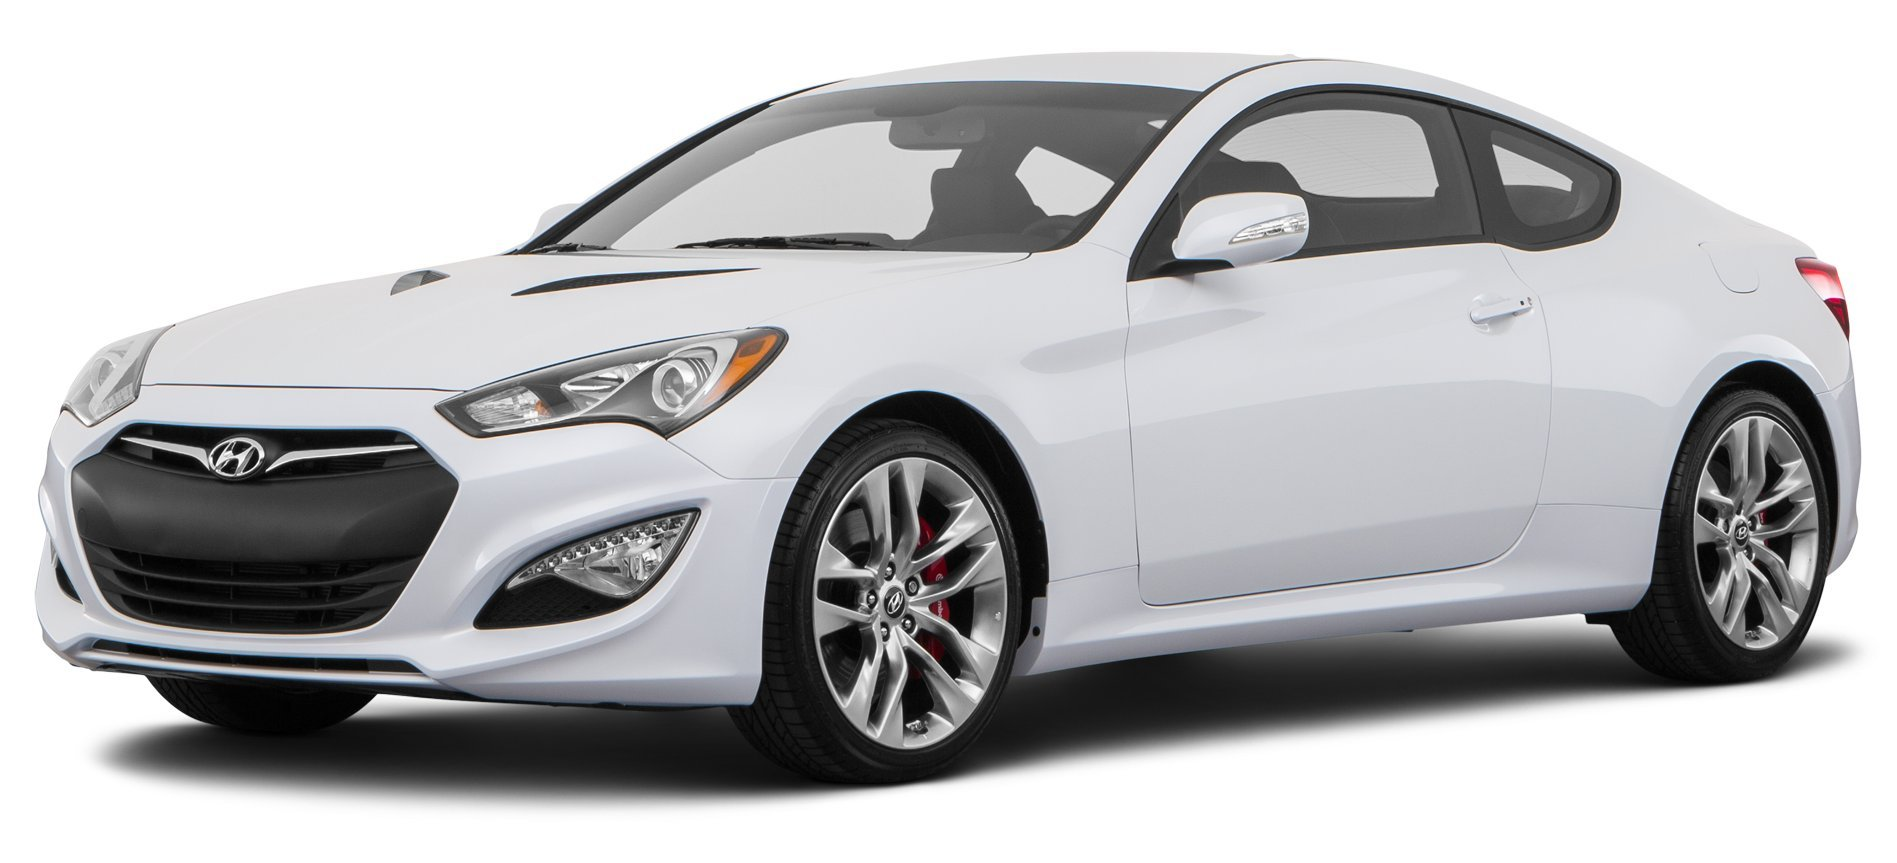 2016 hyundai genesis coupe reviews images and specs vehicles. Black Bedroom Furniture Sets. Home Design Ideas